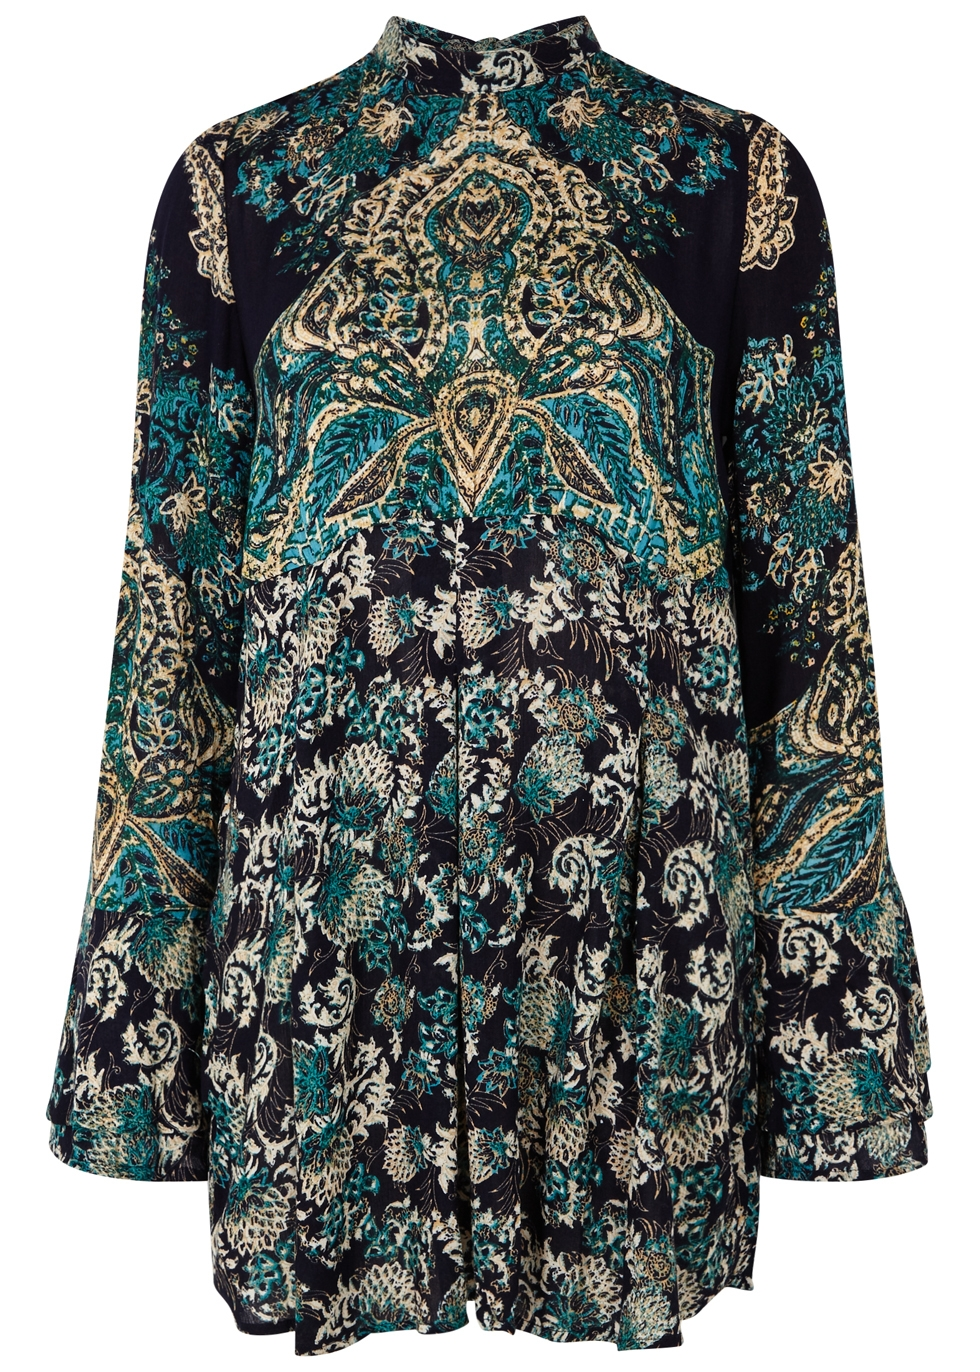 LADY LUCK PRINTED TOP